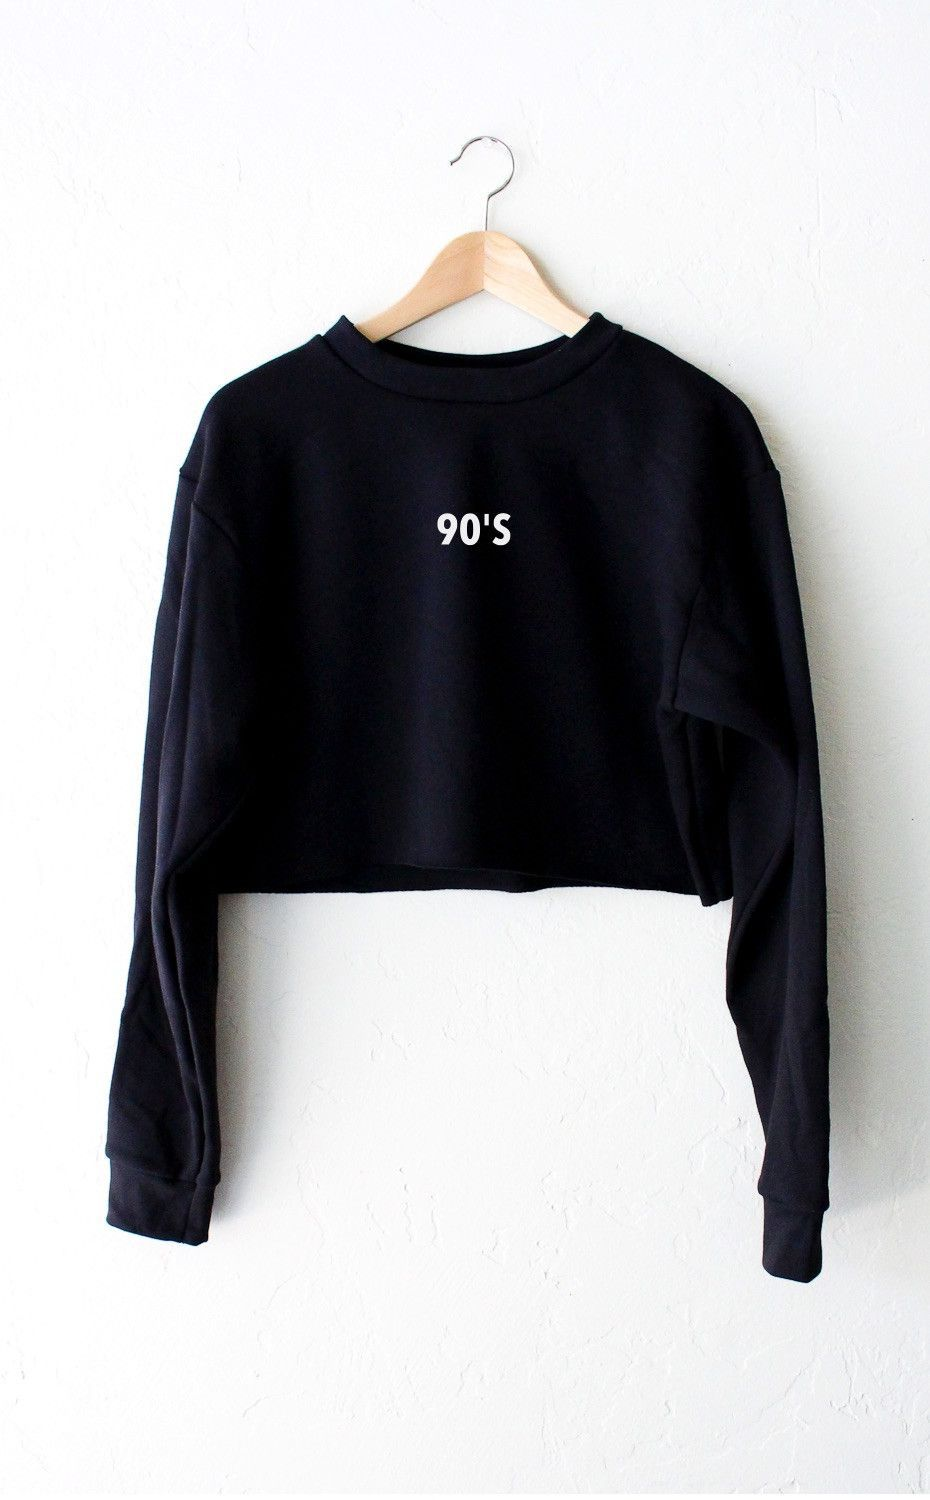 90's Oversized Cropped Sweatshirt